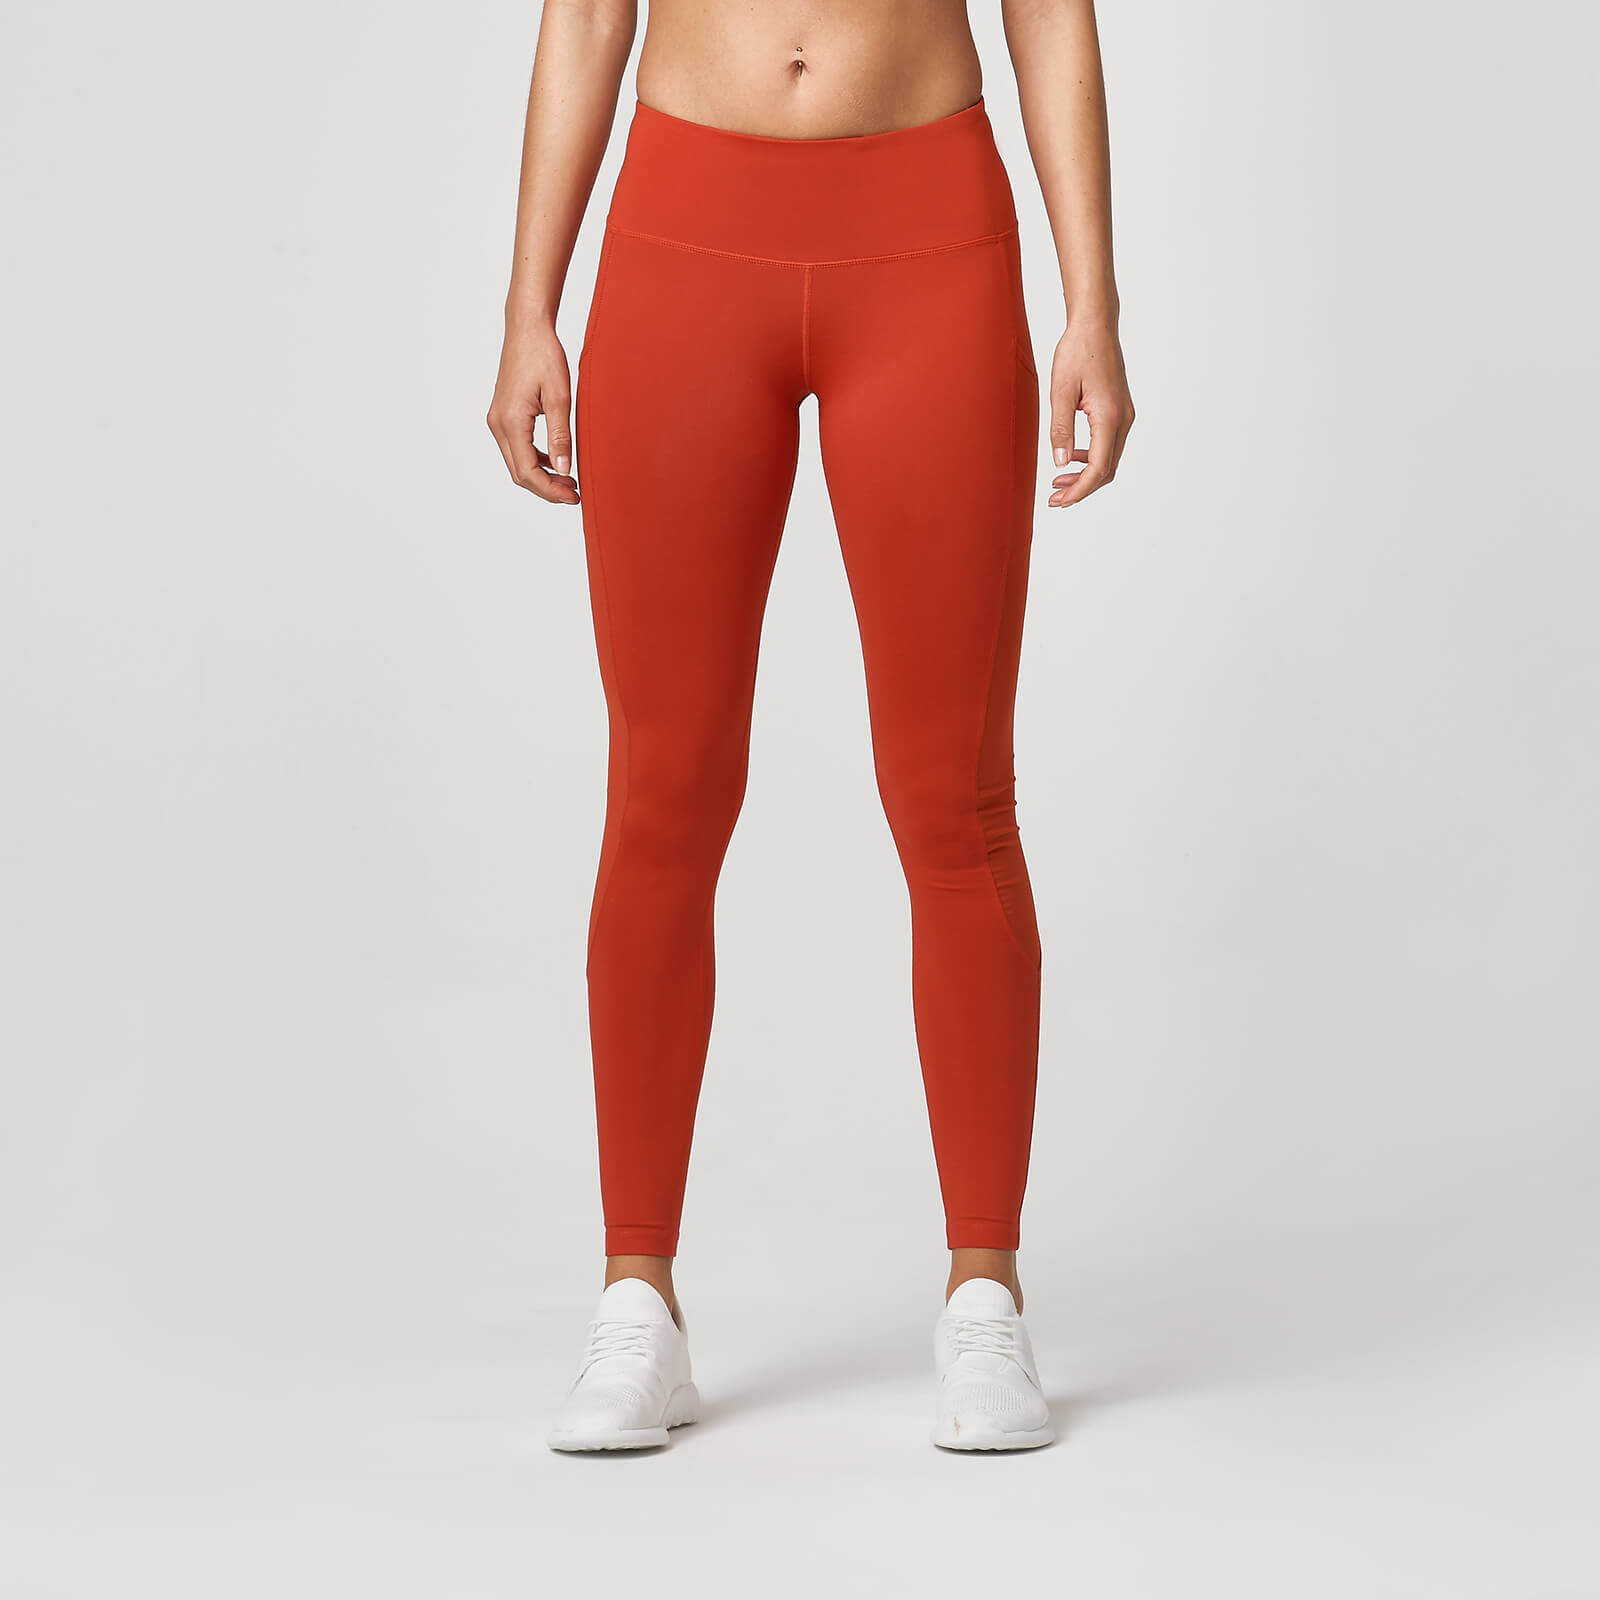 Myprotein Beat Leggings - Clay Red - L